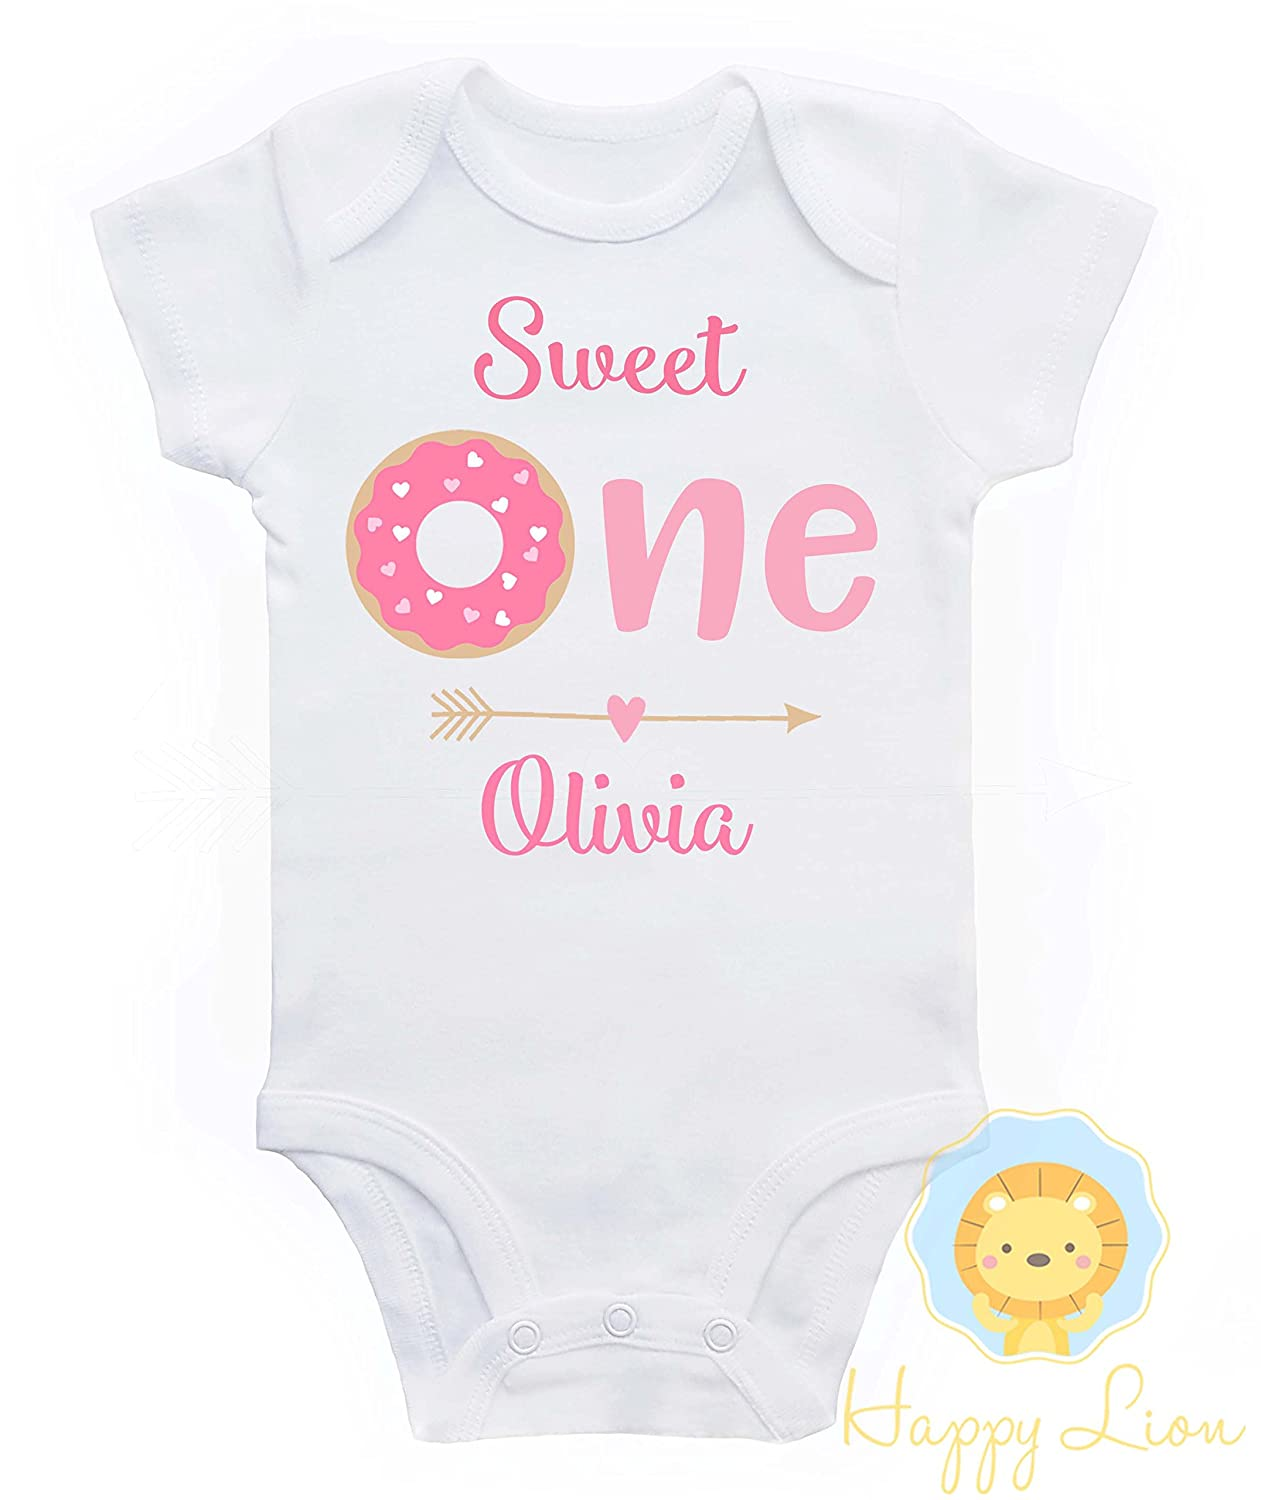 Happy Lion Clothing - Donut First Birthday Onesie®, 1st Birthday outfit